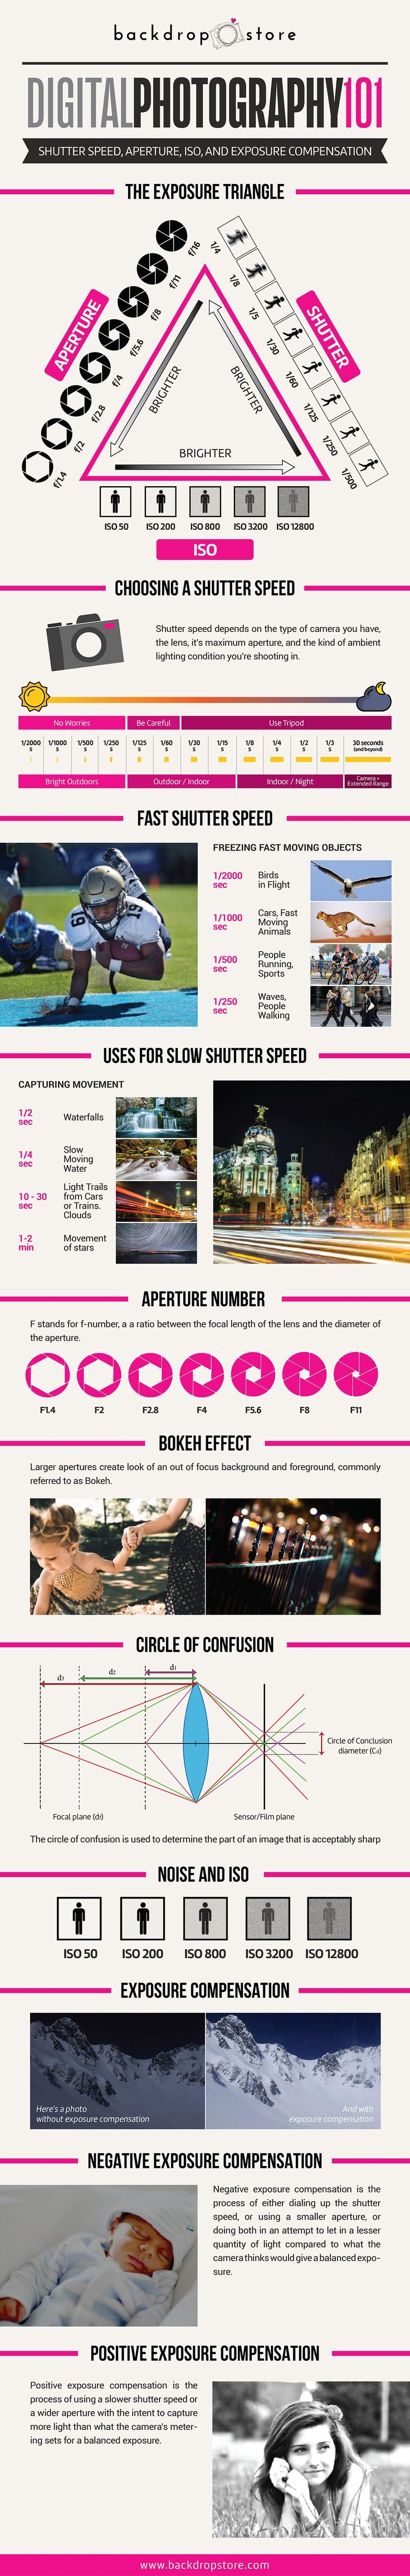 Digital Photography 101 - Shutter speed, Aperture, ISO and Exposure Compensation #photography #photographytips #101